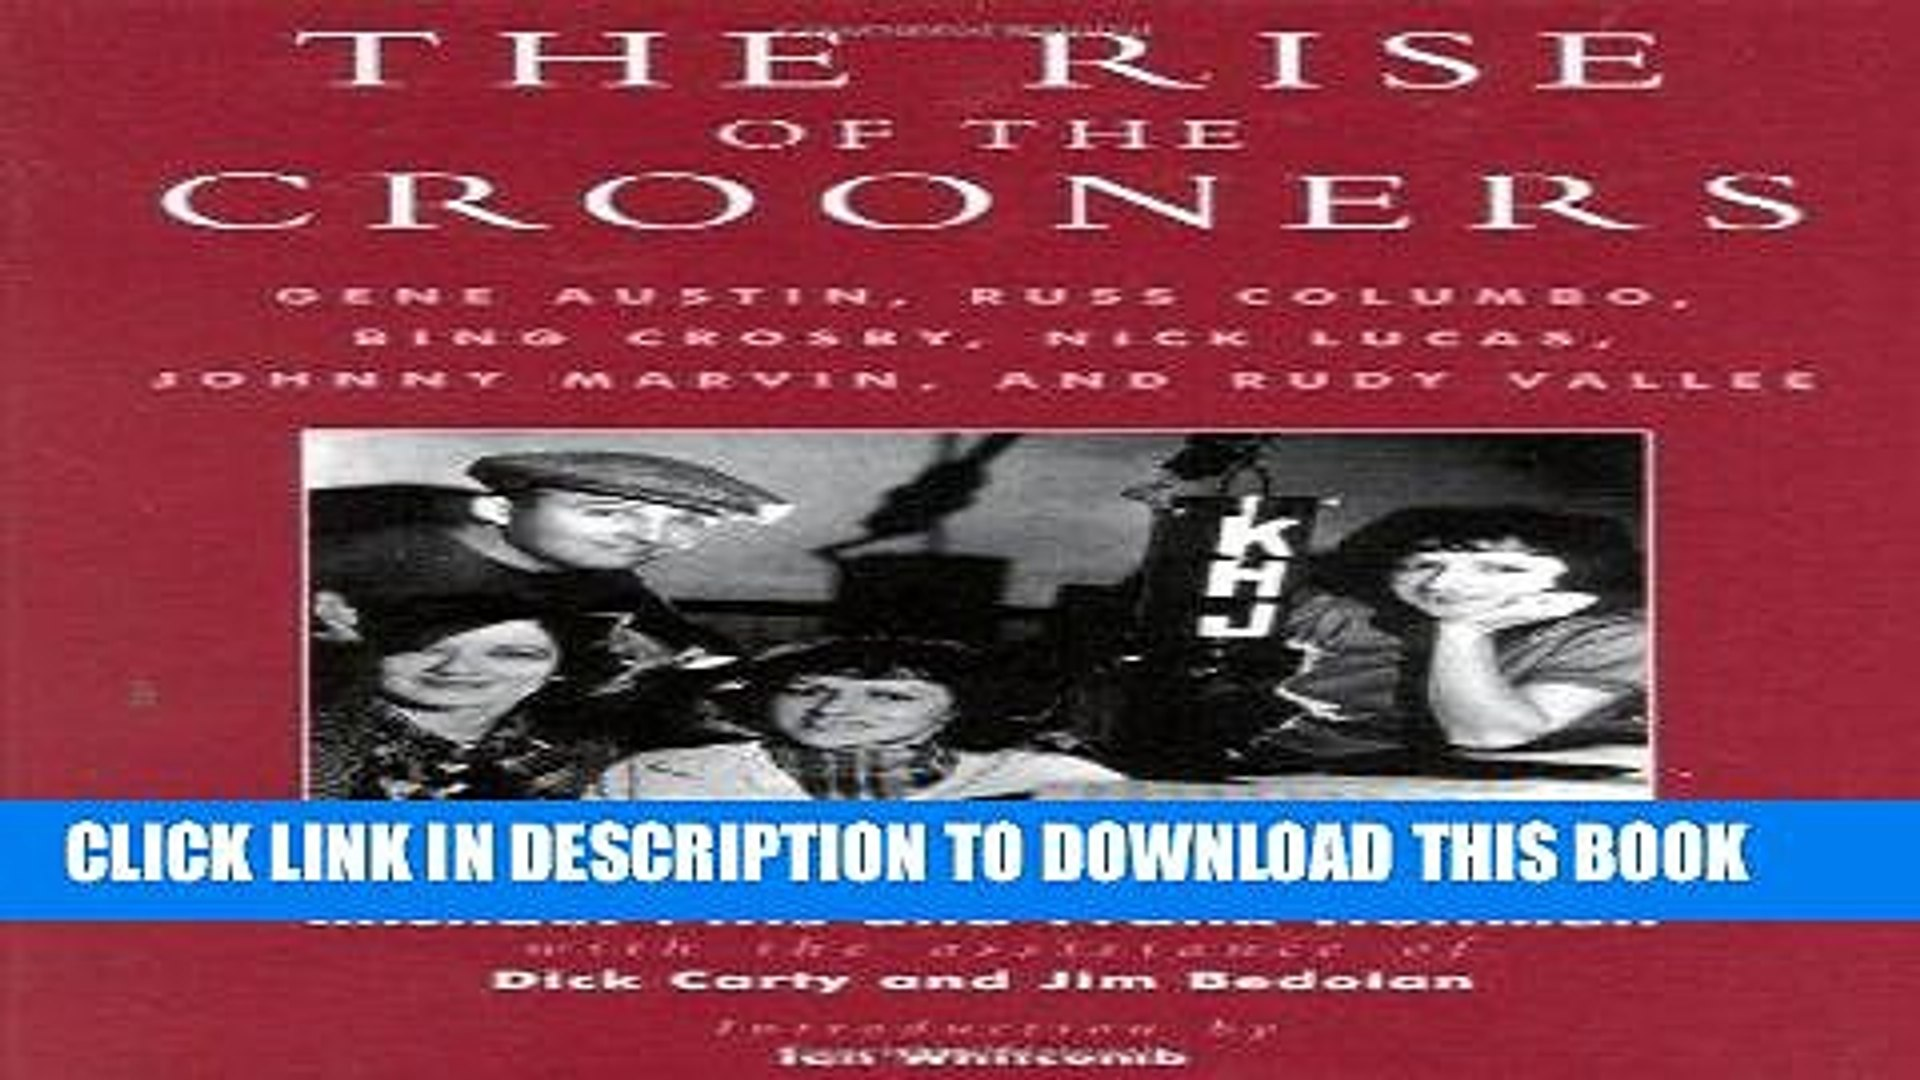 Ebook The Rise of the Crooners: Gene Austin, Russ Columbo, Bing Crosby, Nick Lucas, Johnny Marvin